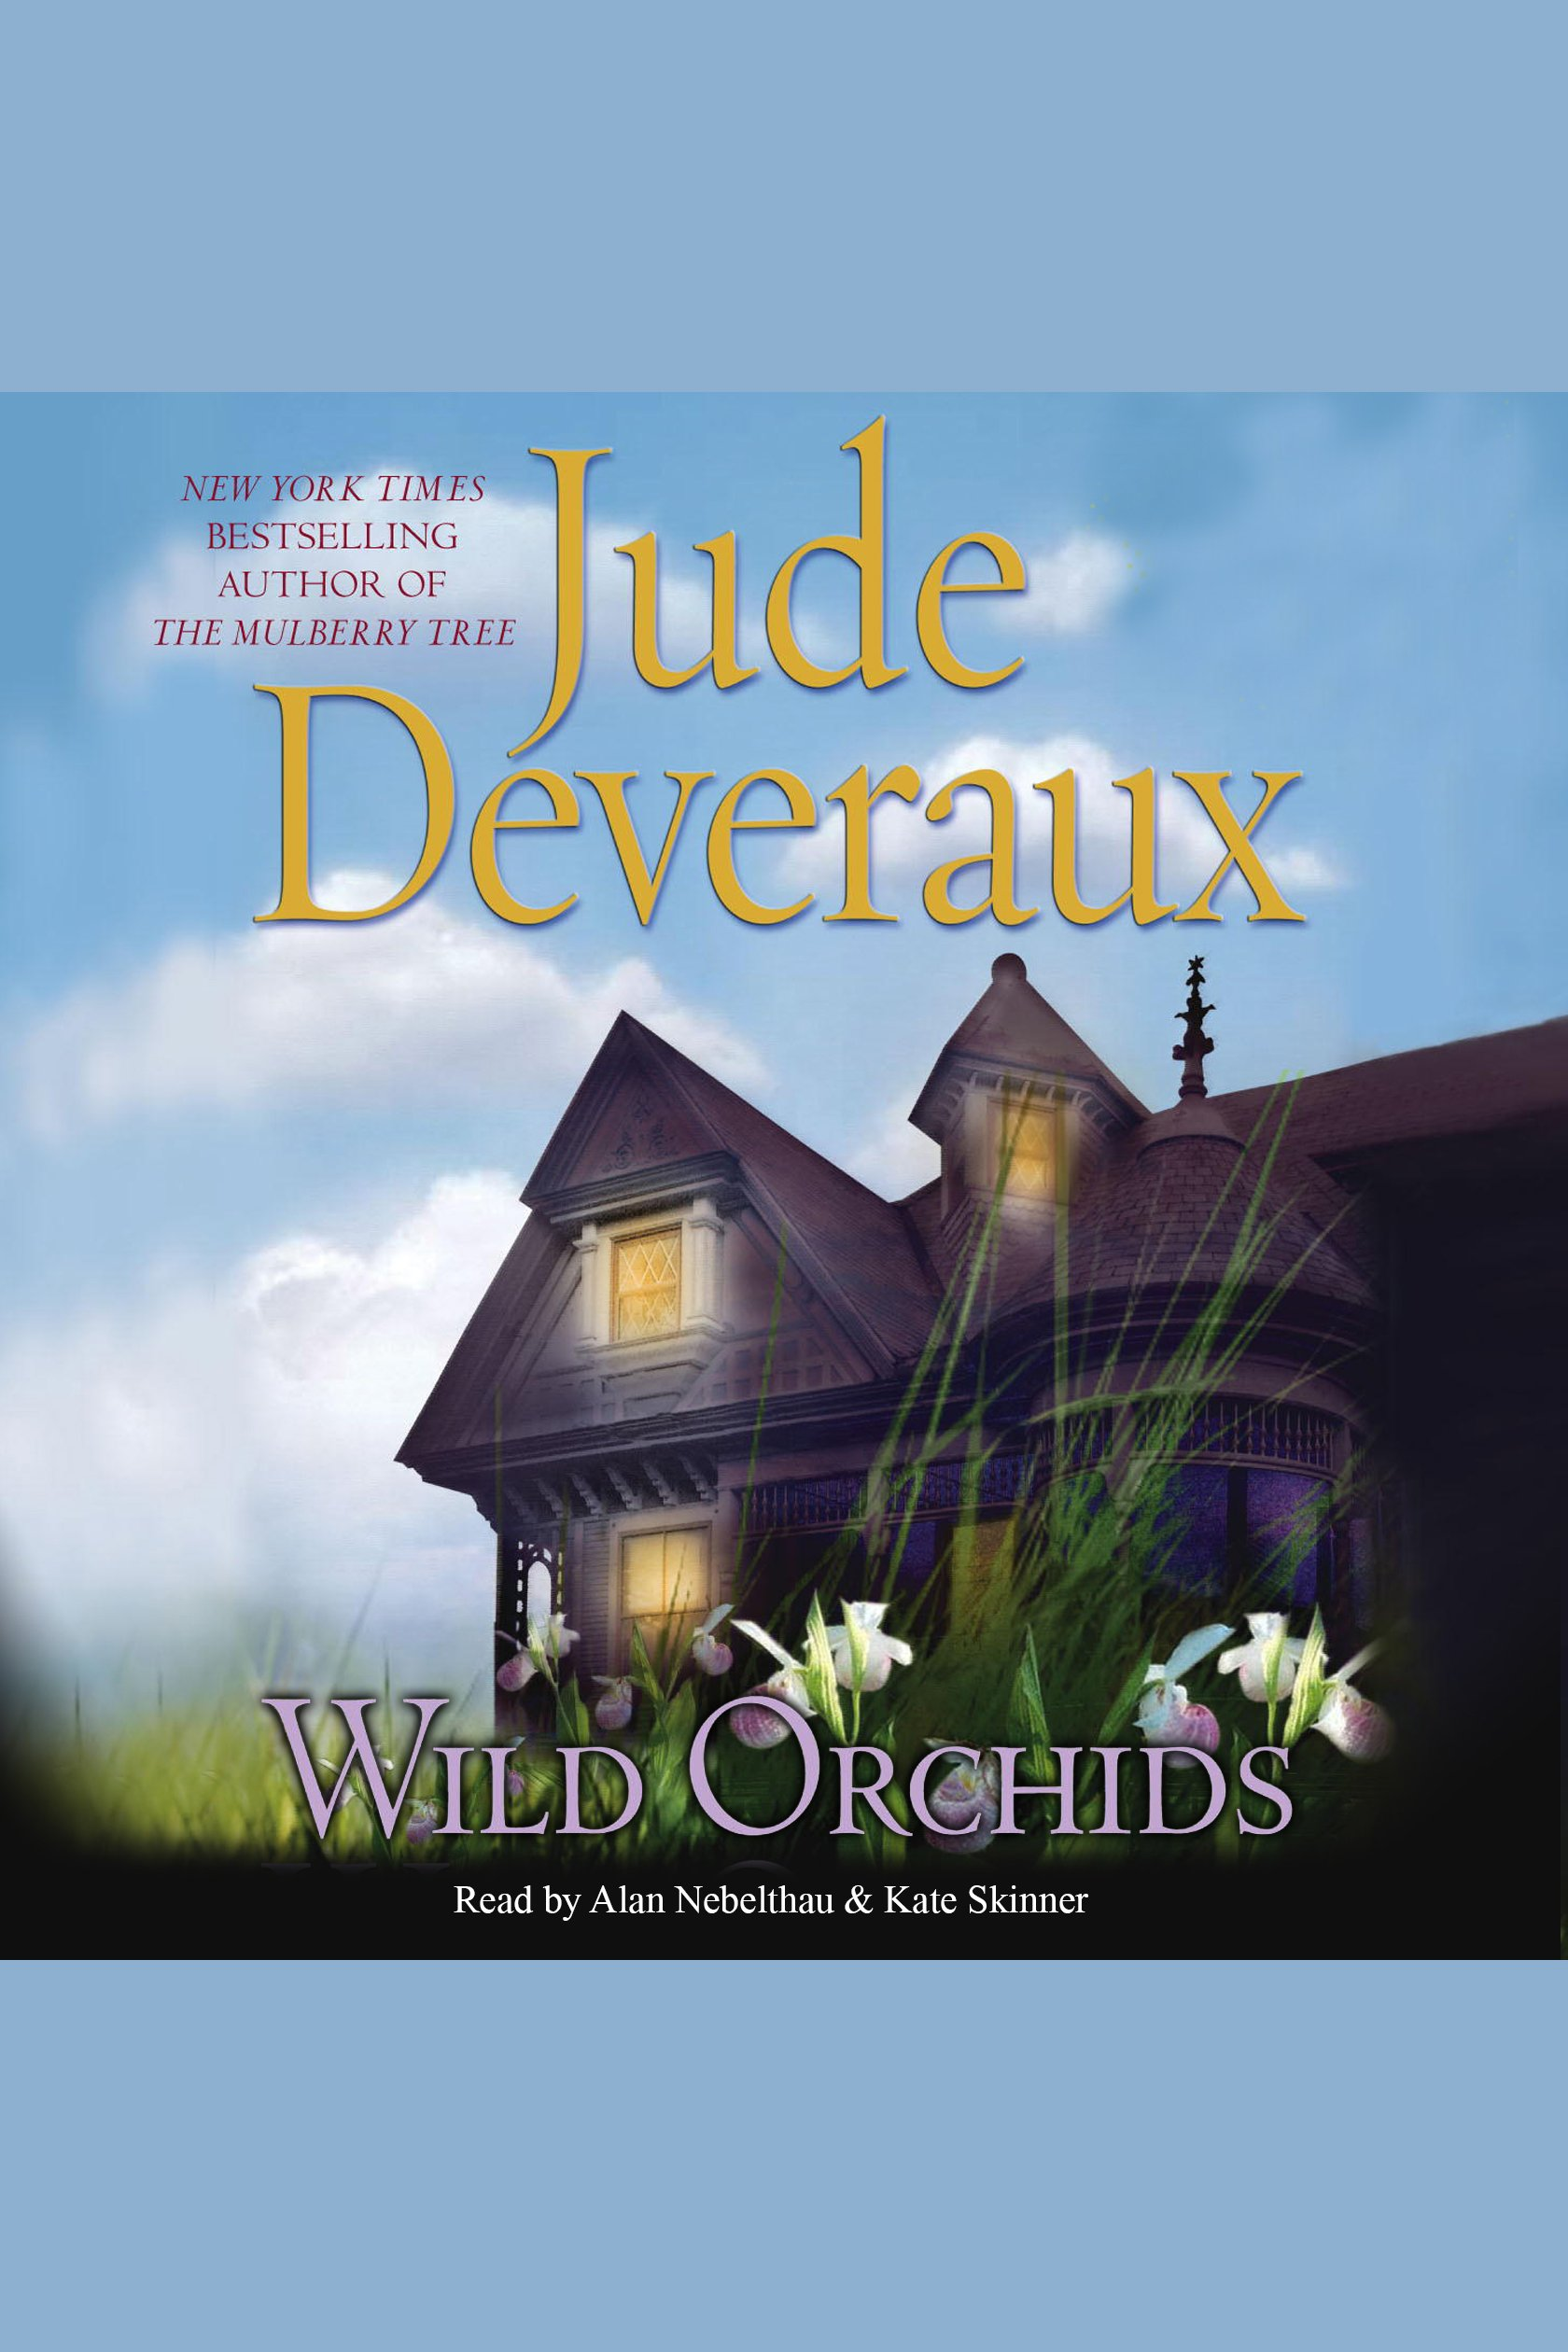 Wild Orchids cover image